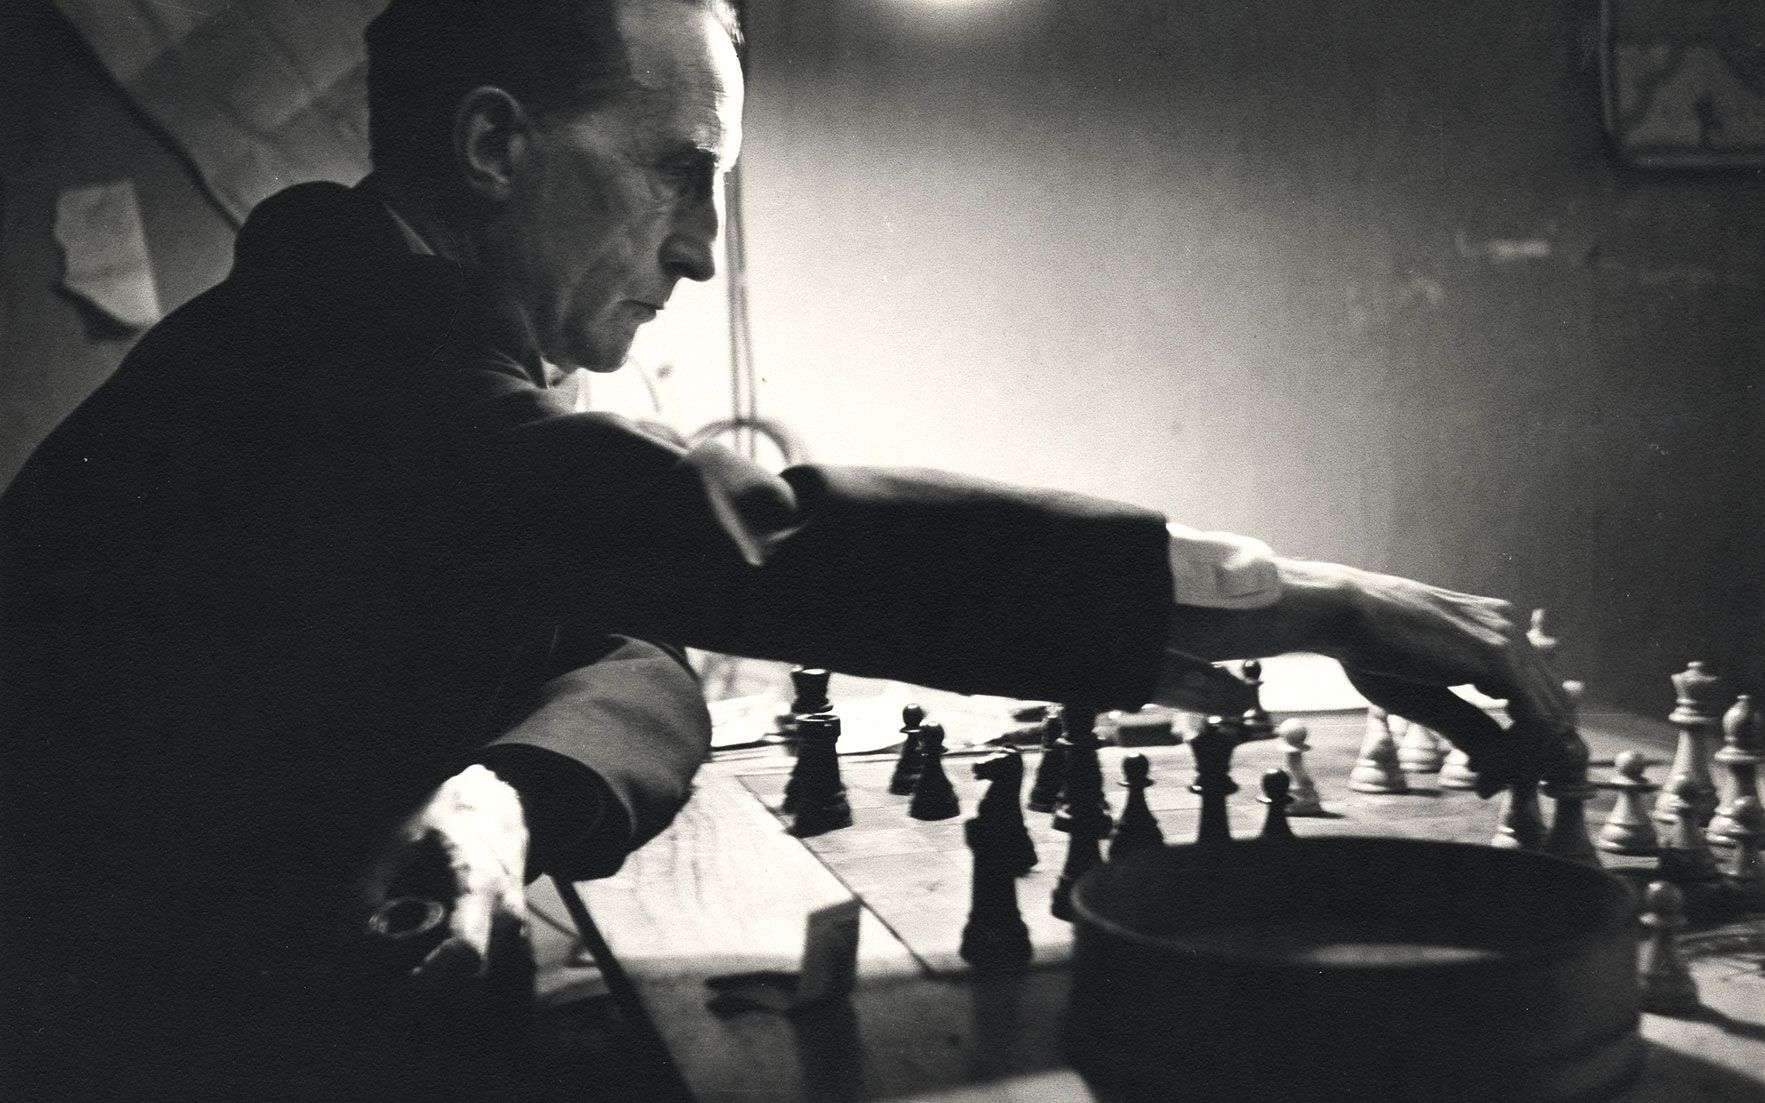 Marcel Duchamp, his pipe, and his passion for chess